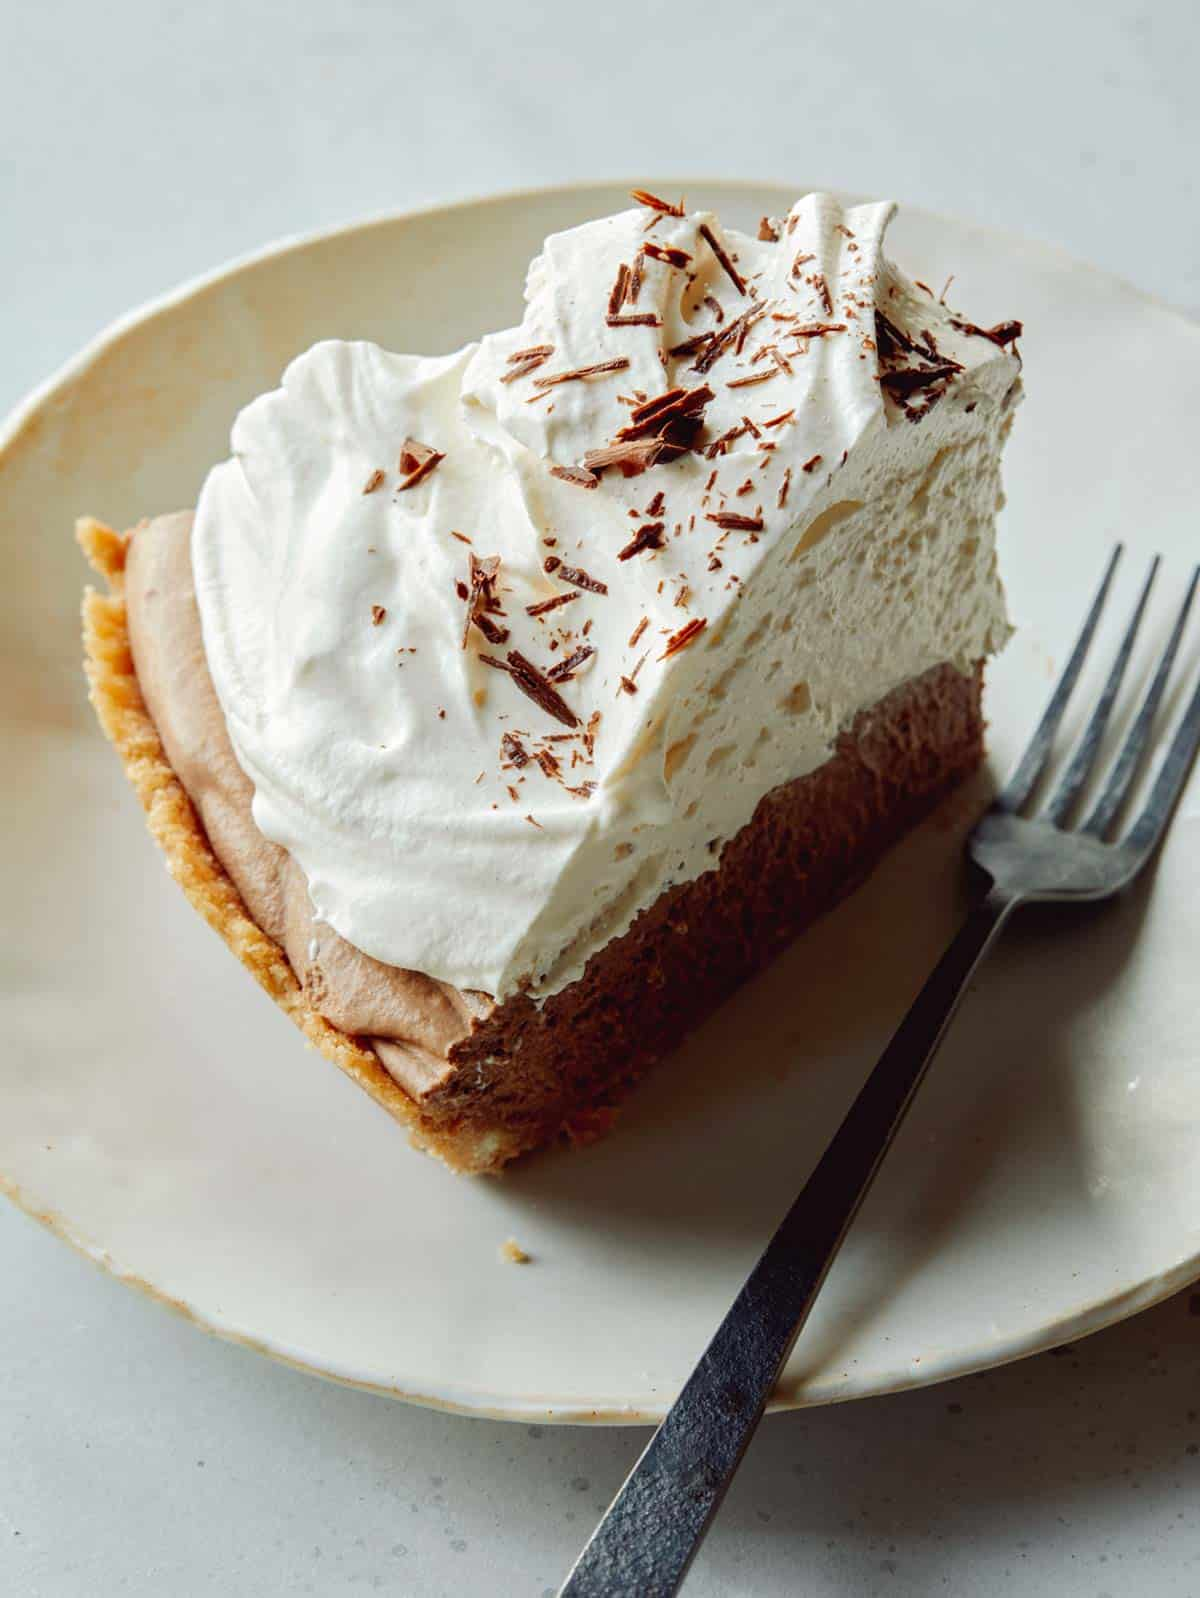 A slice of french silk pie on a plate with a fork next to it.